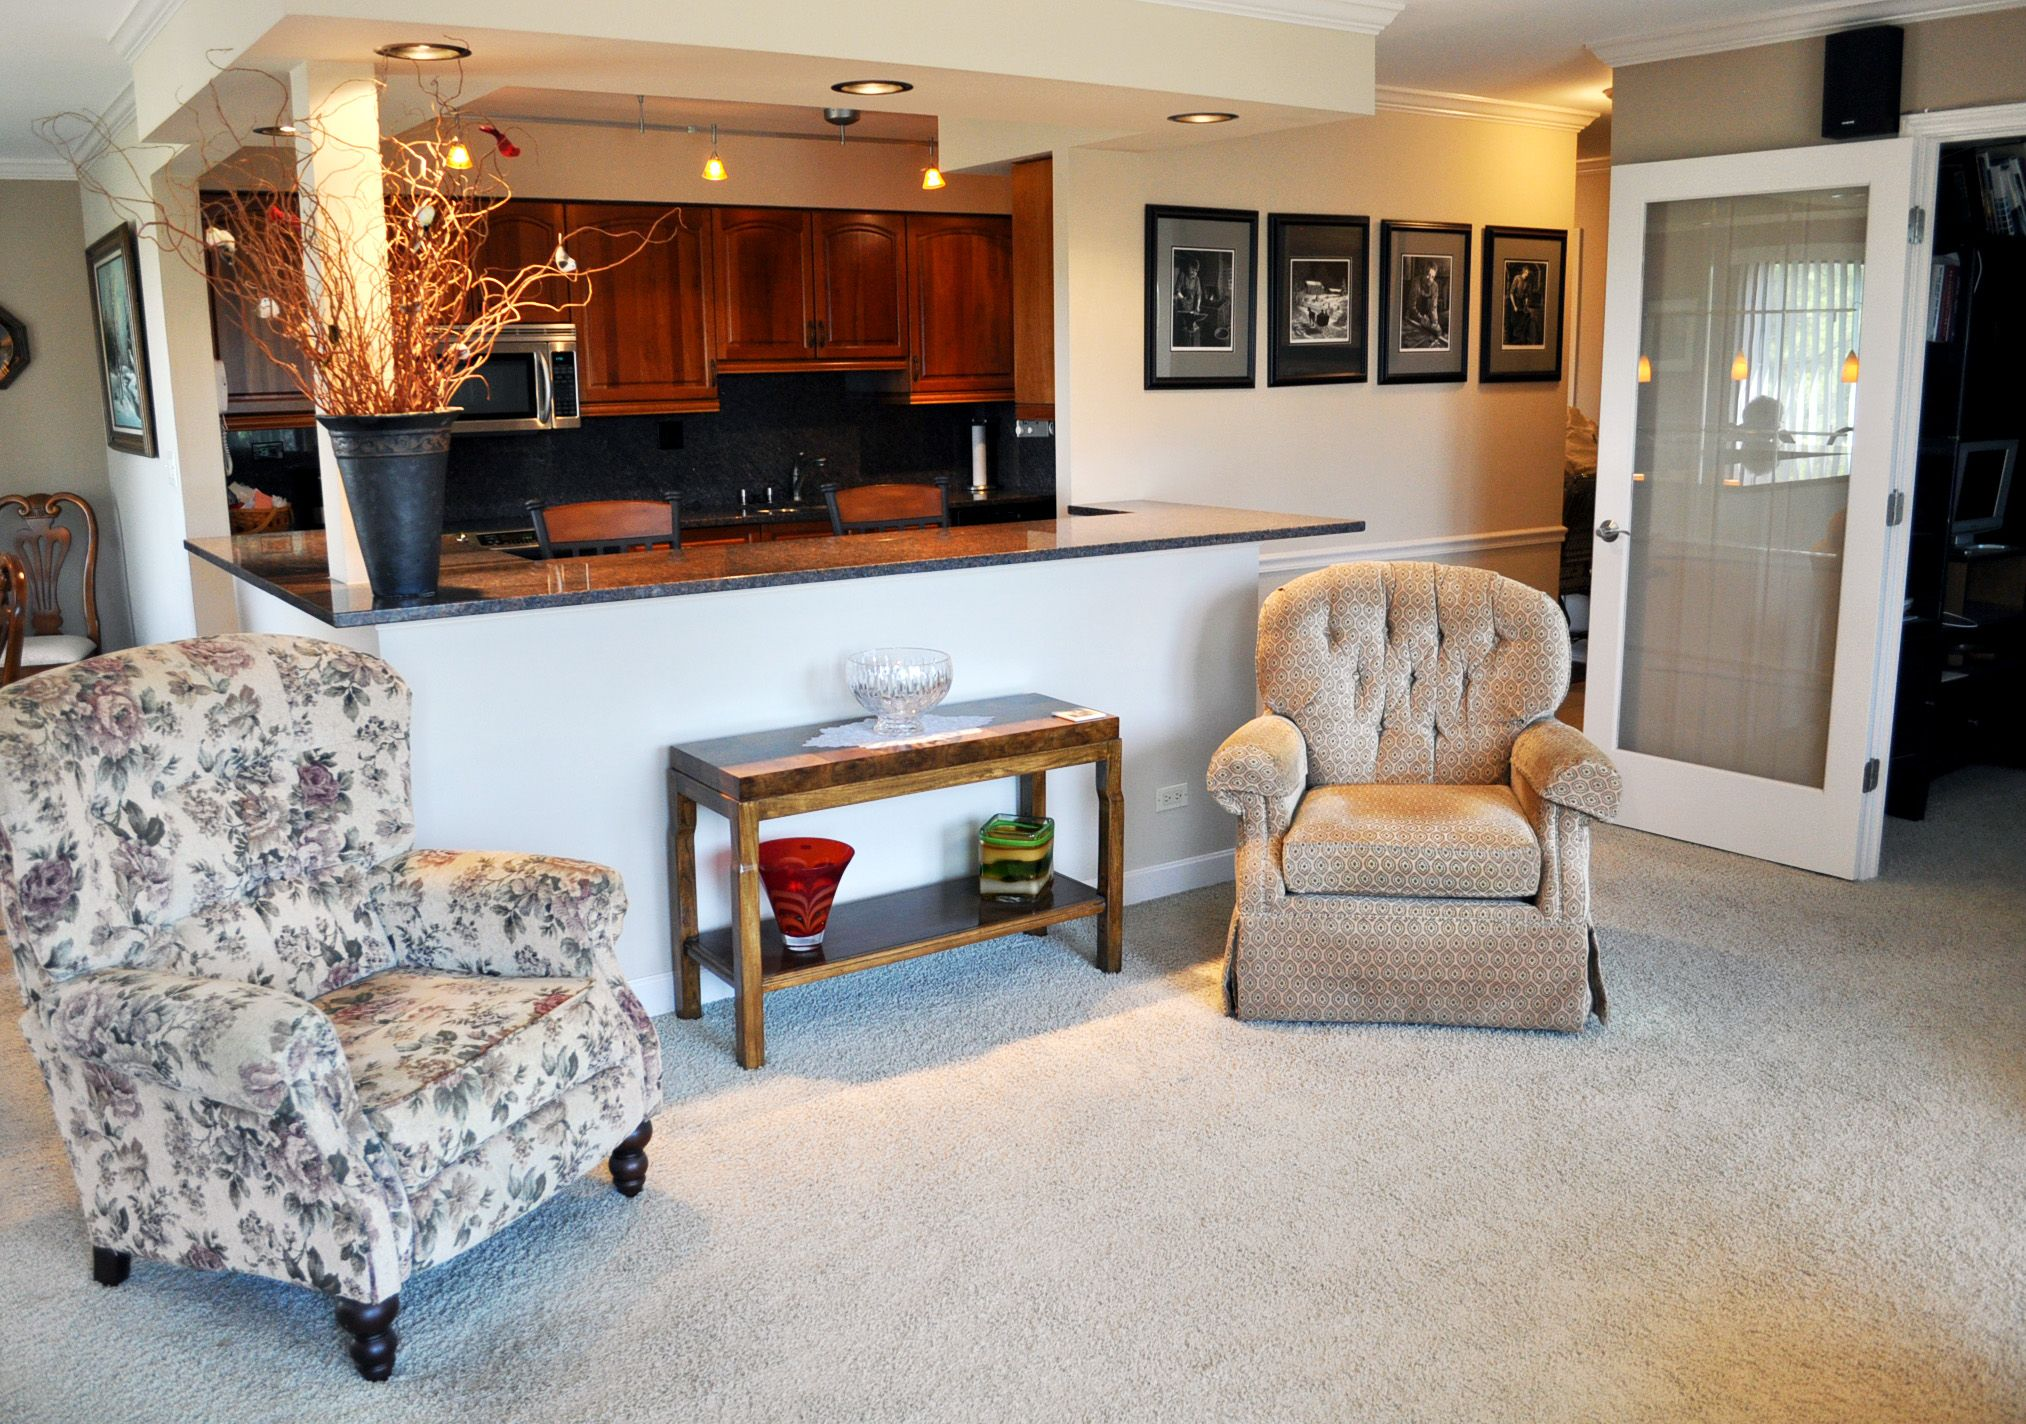 Great open spaces in the main living space! Living